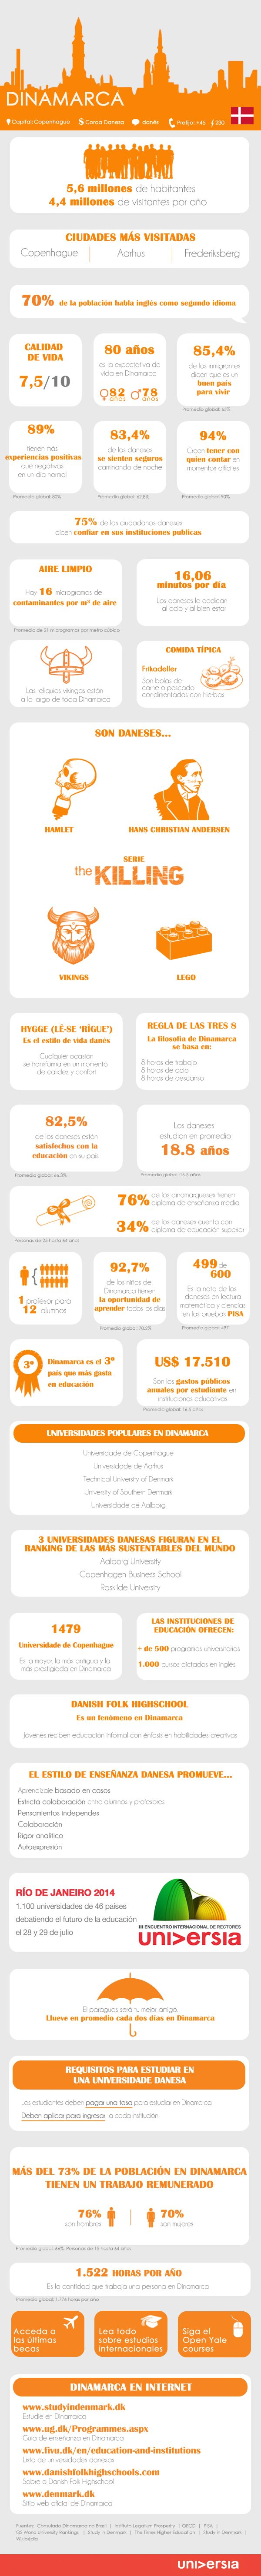 133 best Cultura general images on Pinterest | Info graphics ...